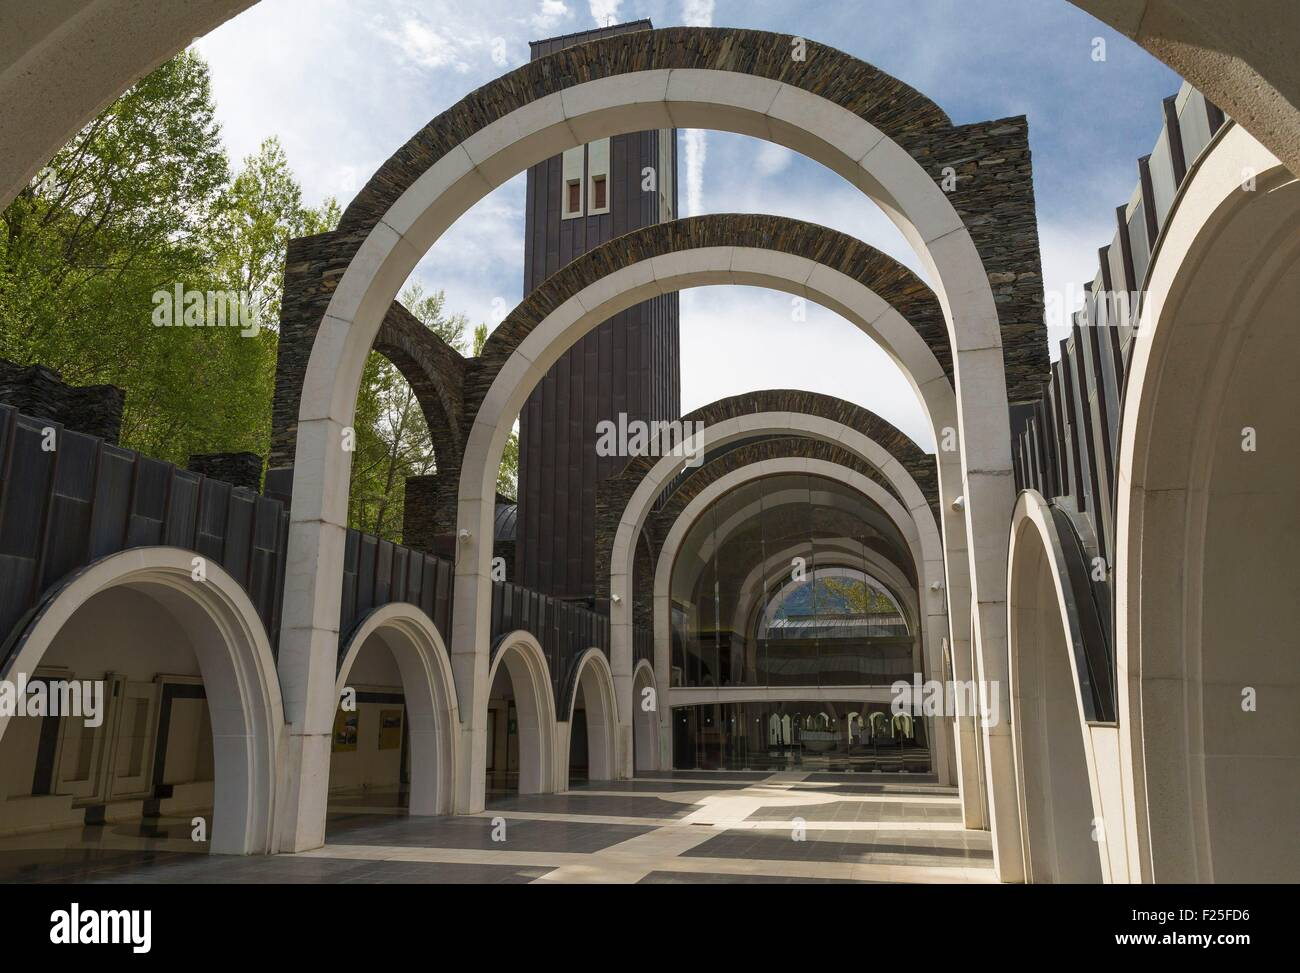 Andorra, Meritxell, the sanctuary of Our Lady of Meritxell, by Ricardo Bofill - Stock Image